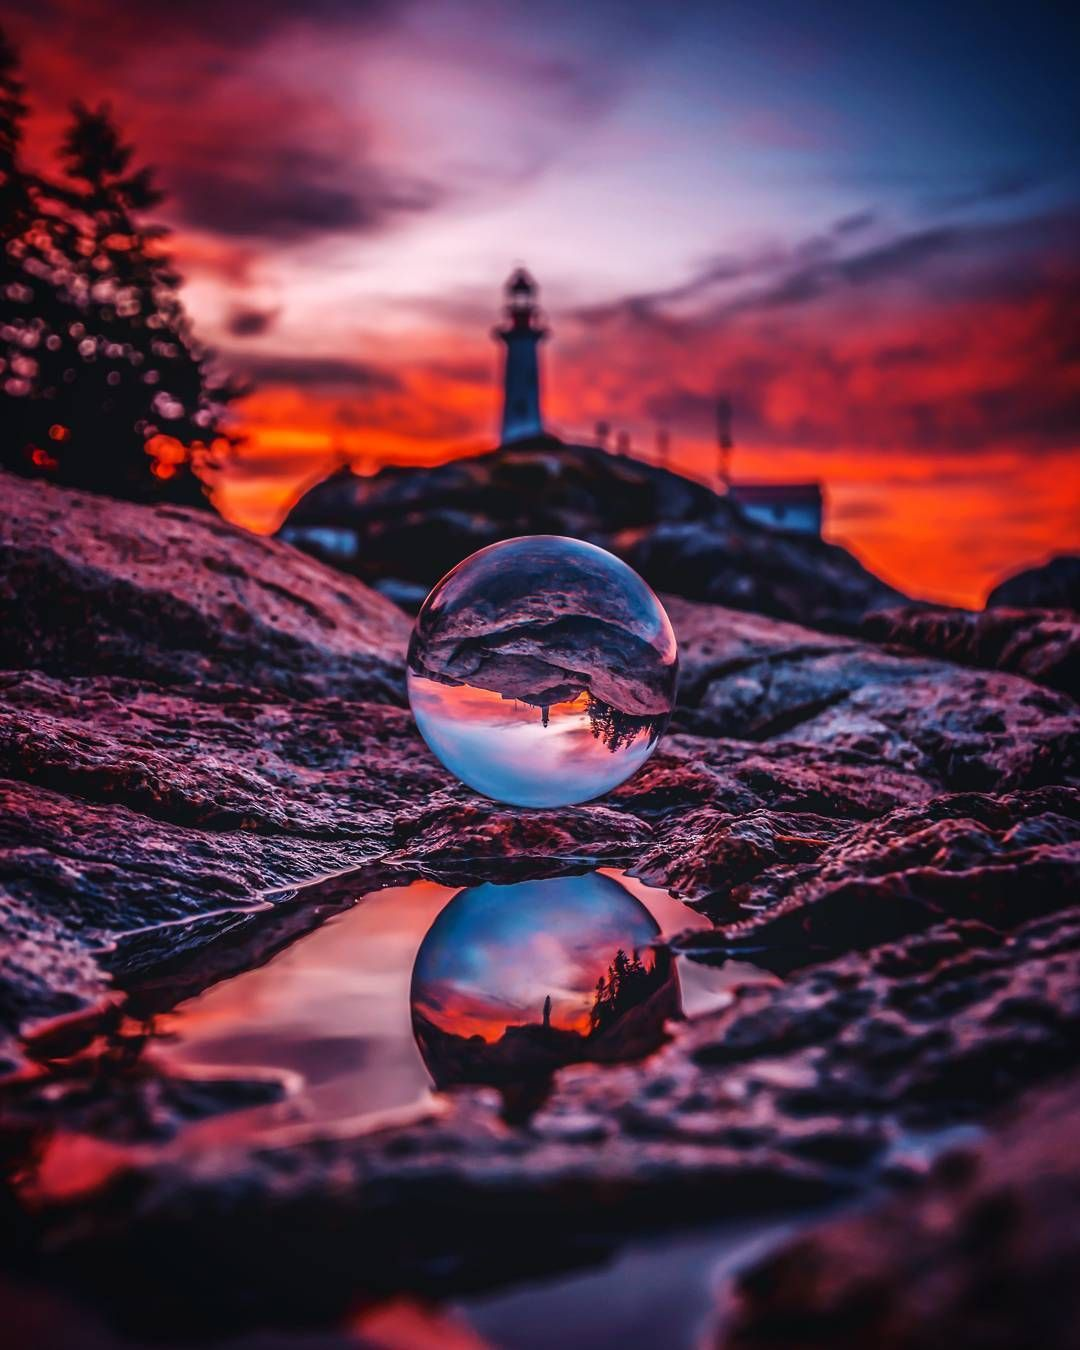 Crystal Ball Photography High Quality Limball Pro 80 Mm With Free Stand Landscape Photography Nature Photography Reflection Photography